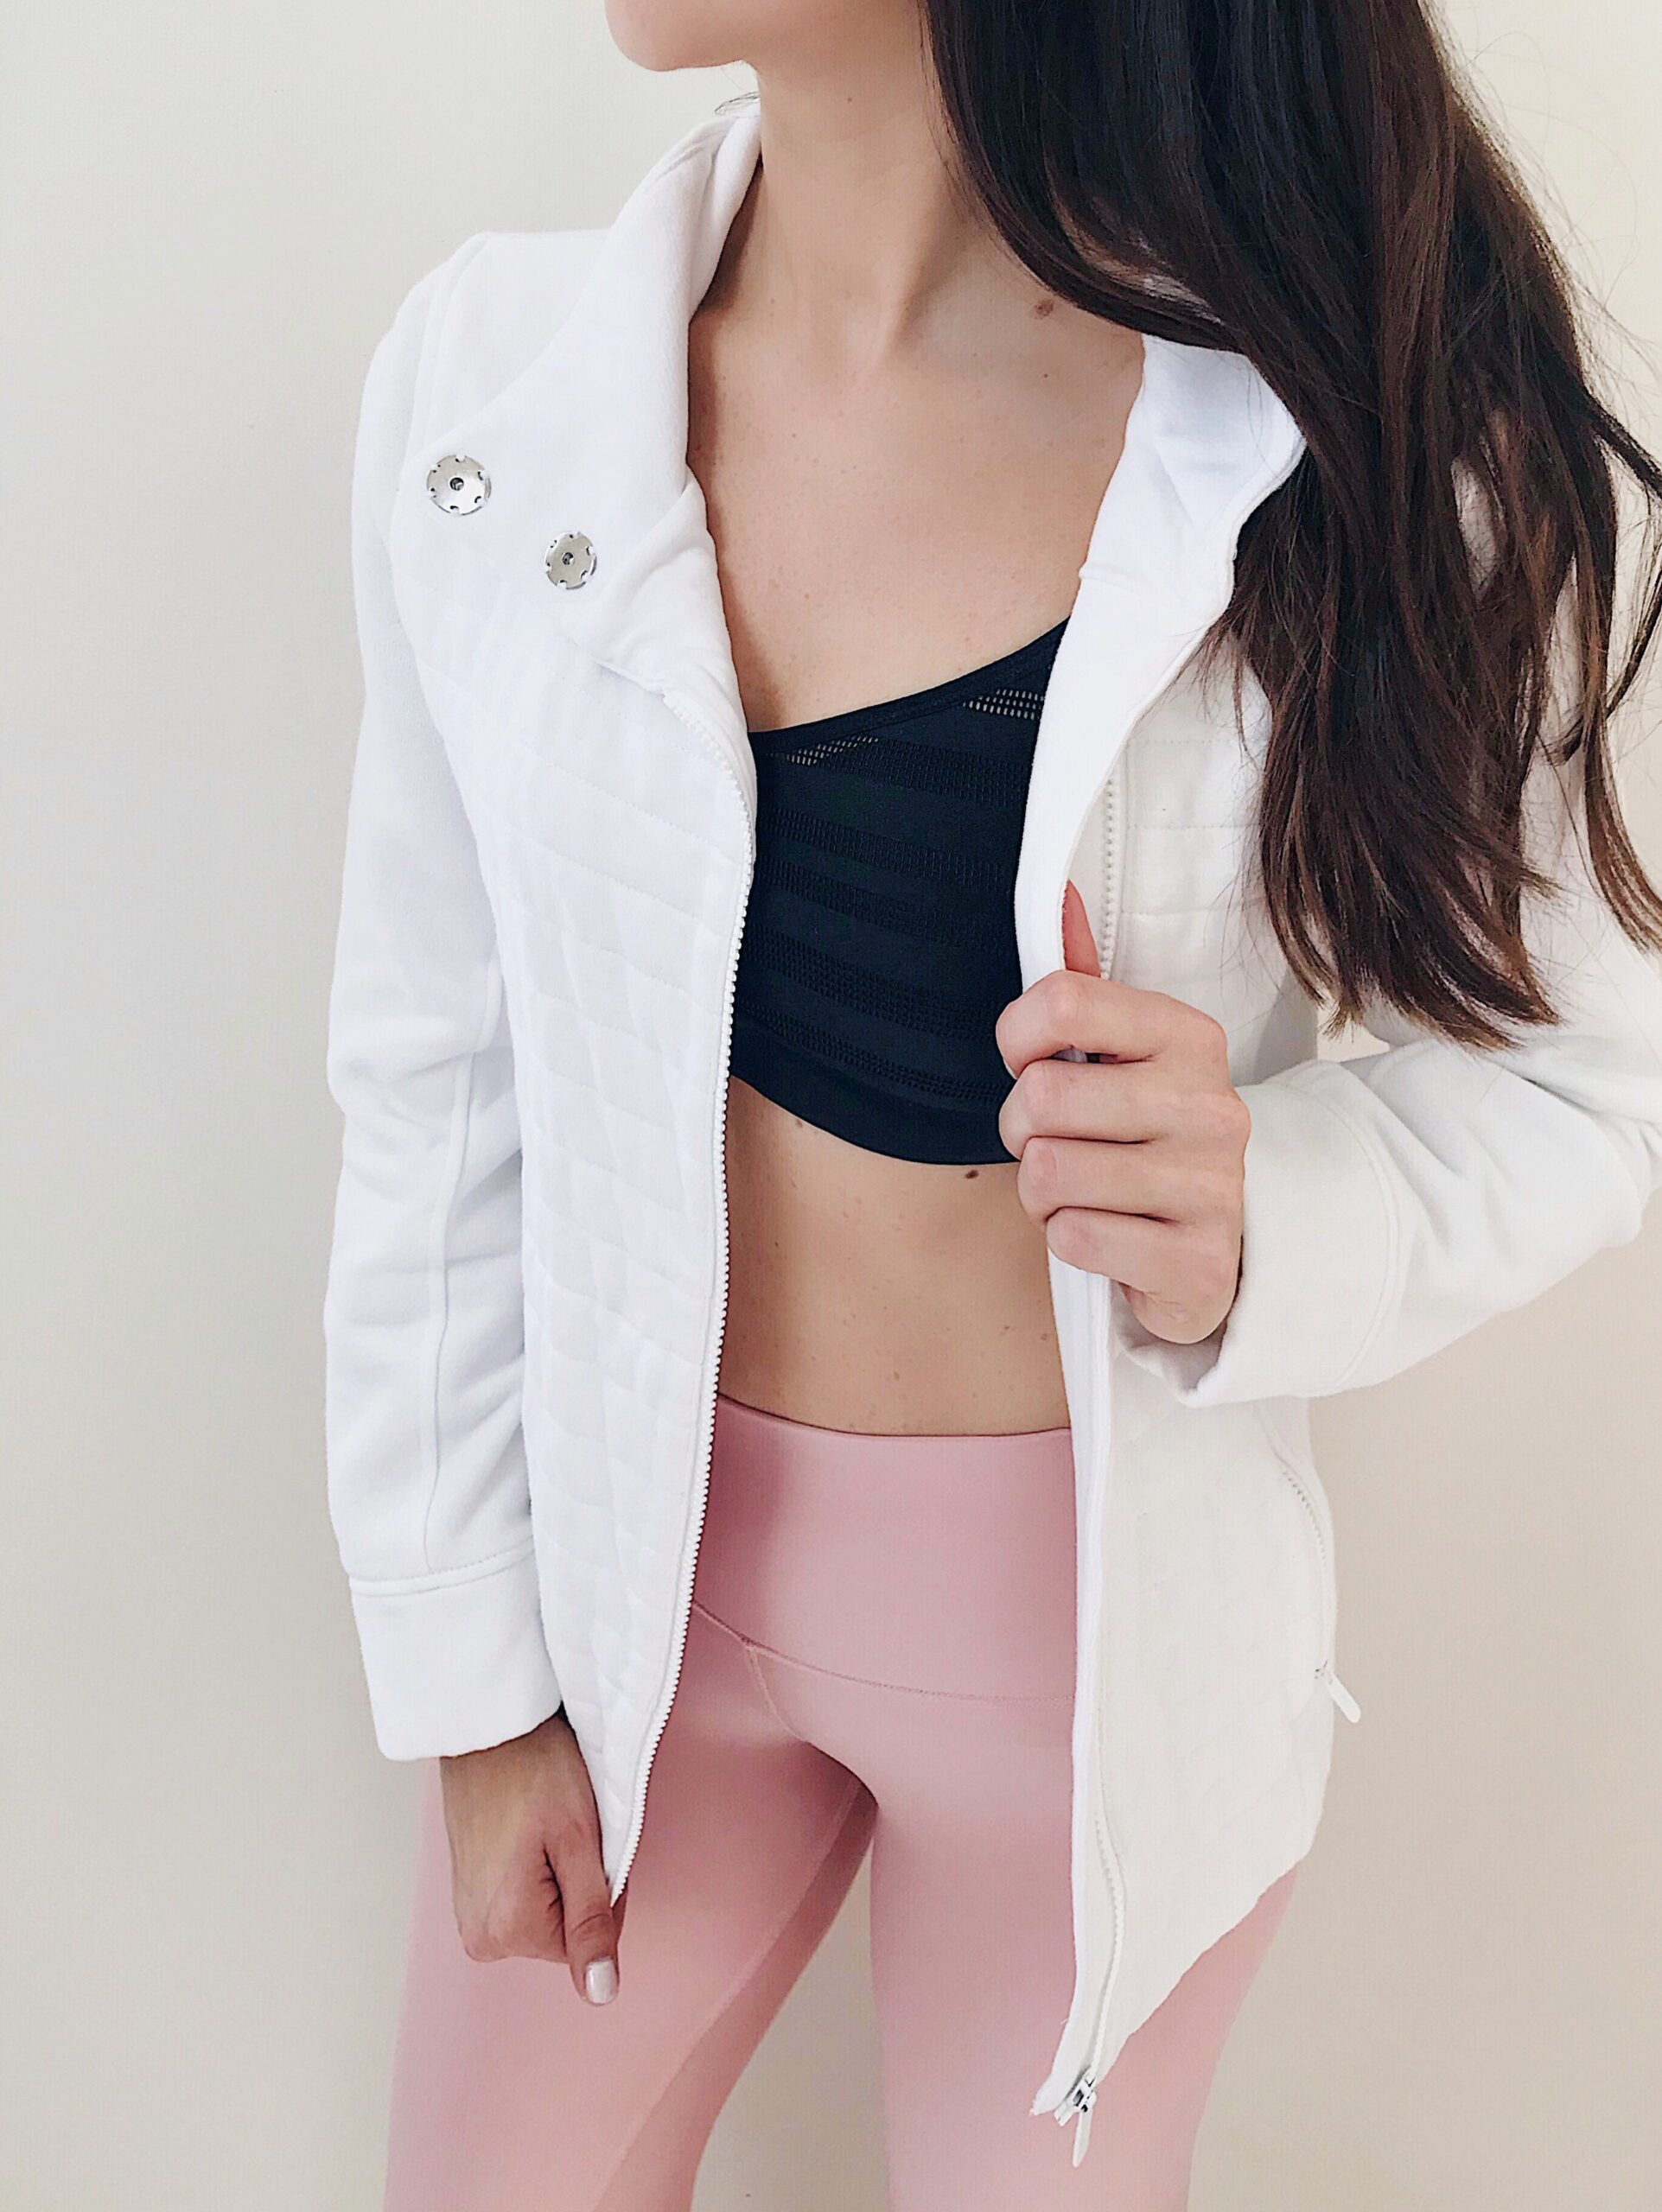 pink leggings, sports bra, cute workout outfit